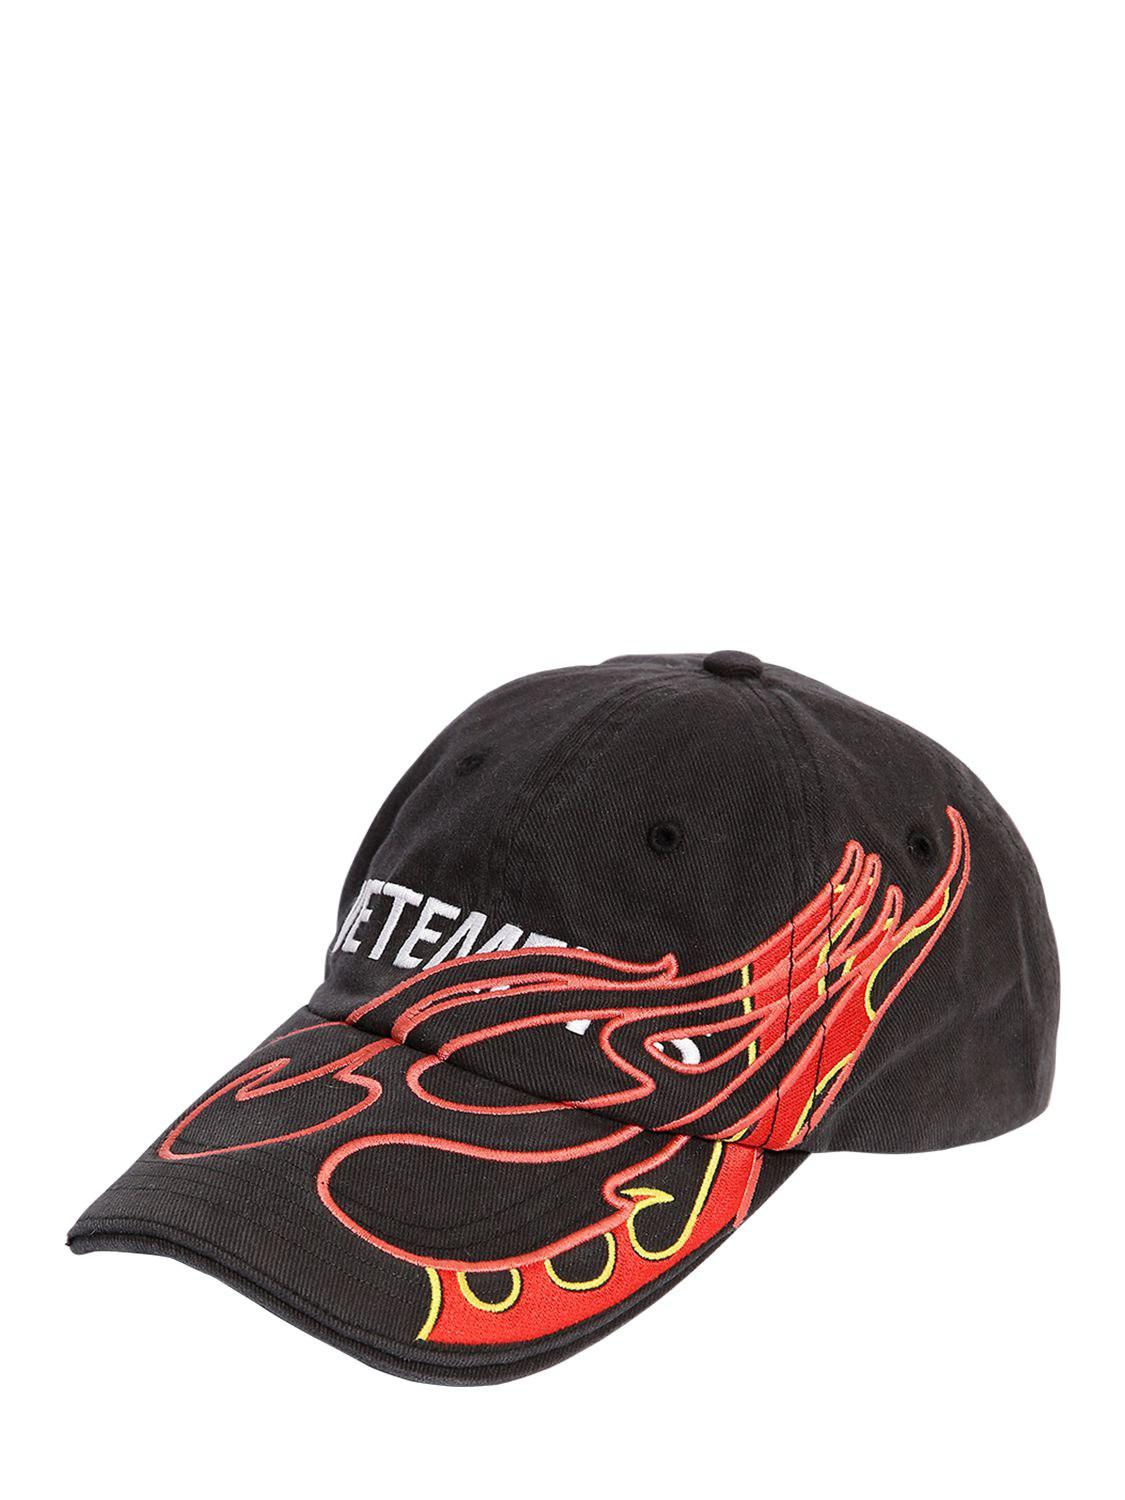 083bb6647c5b2 Vetements Printed Logo Fire Hat in Black - Save 6% - Lyst